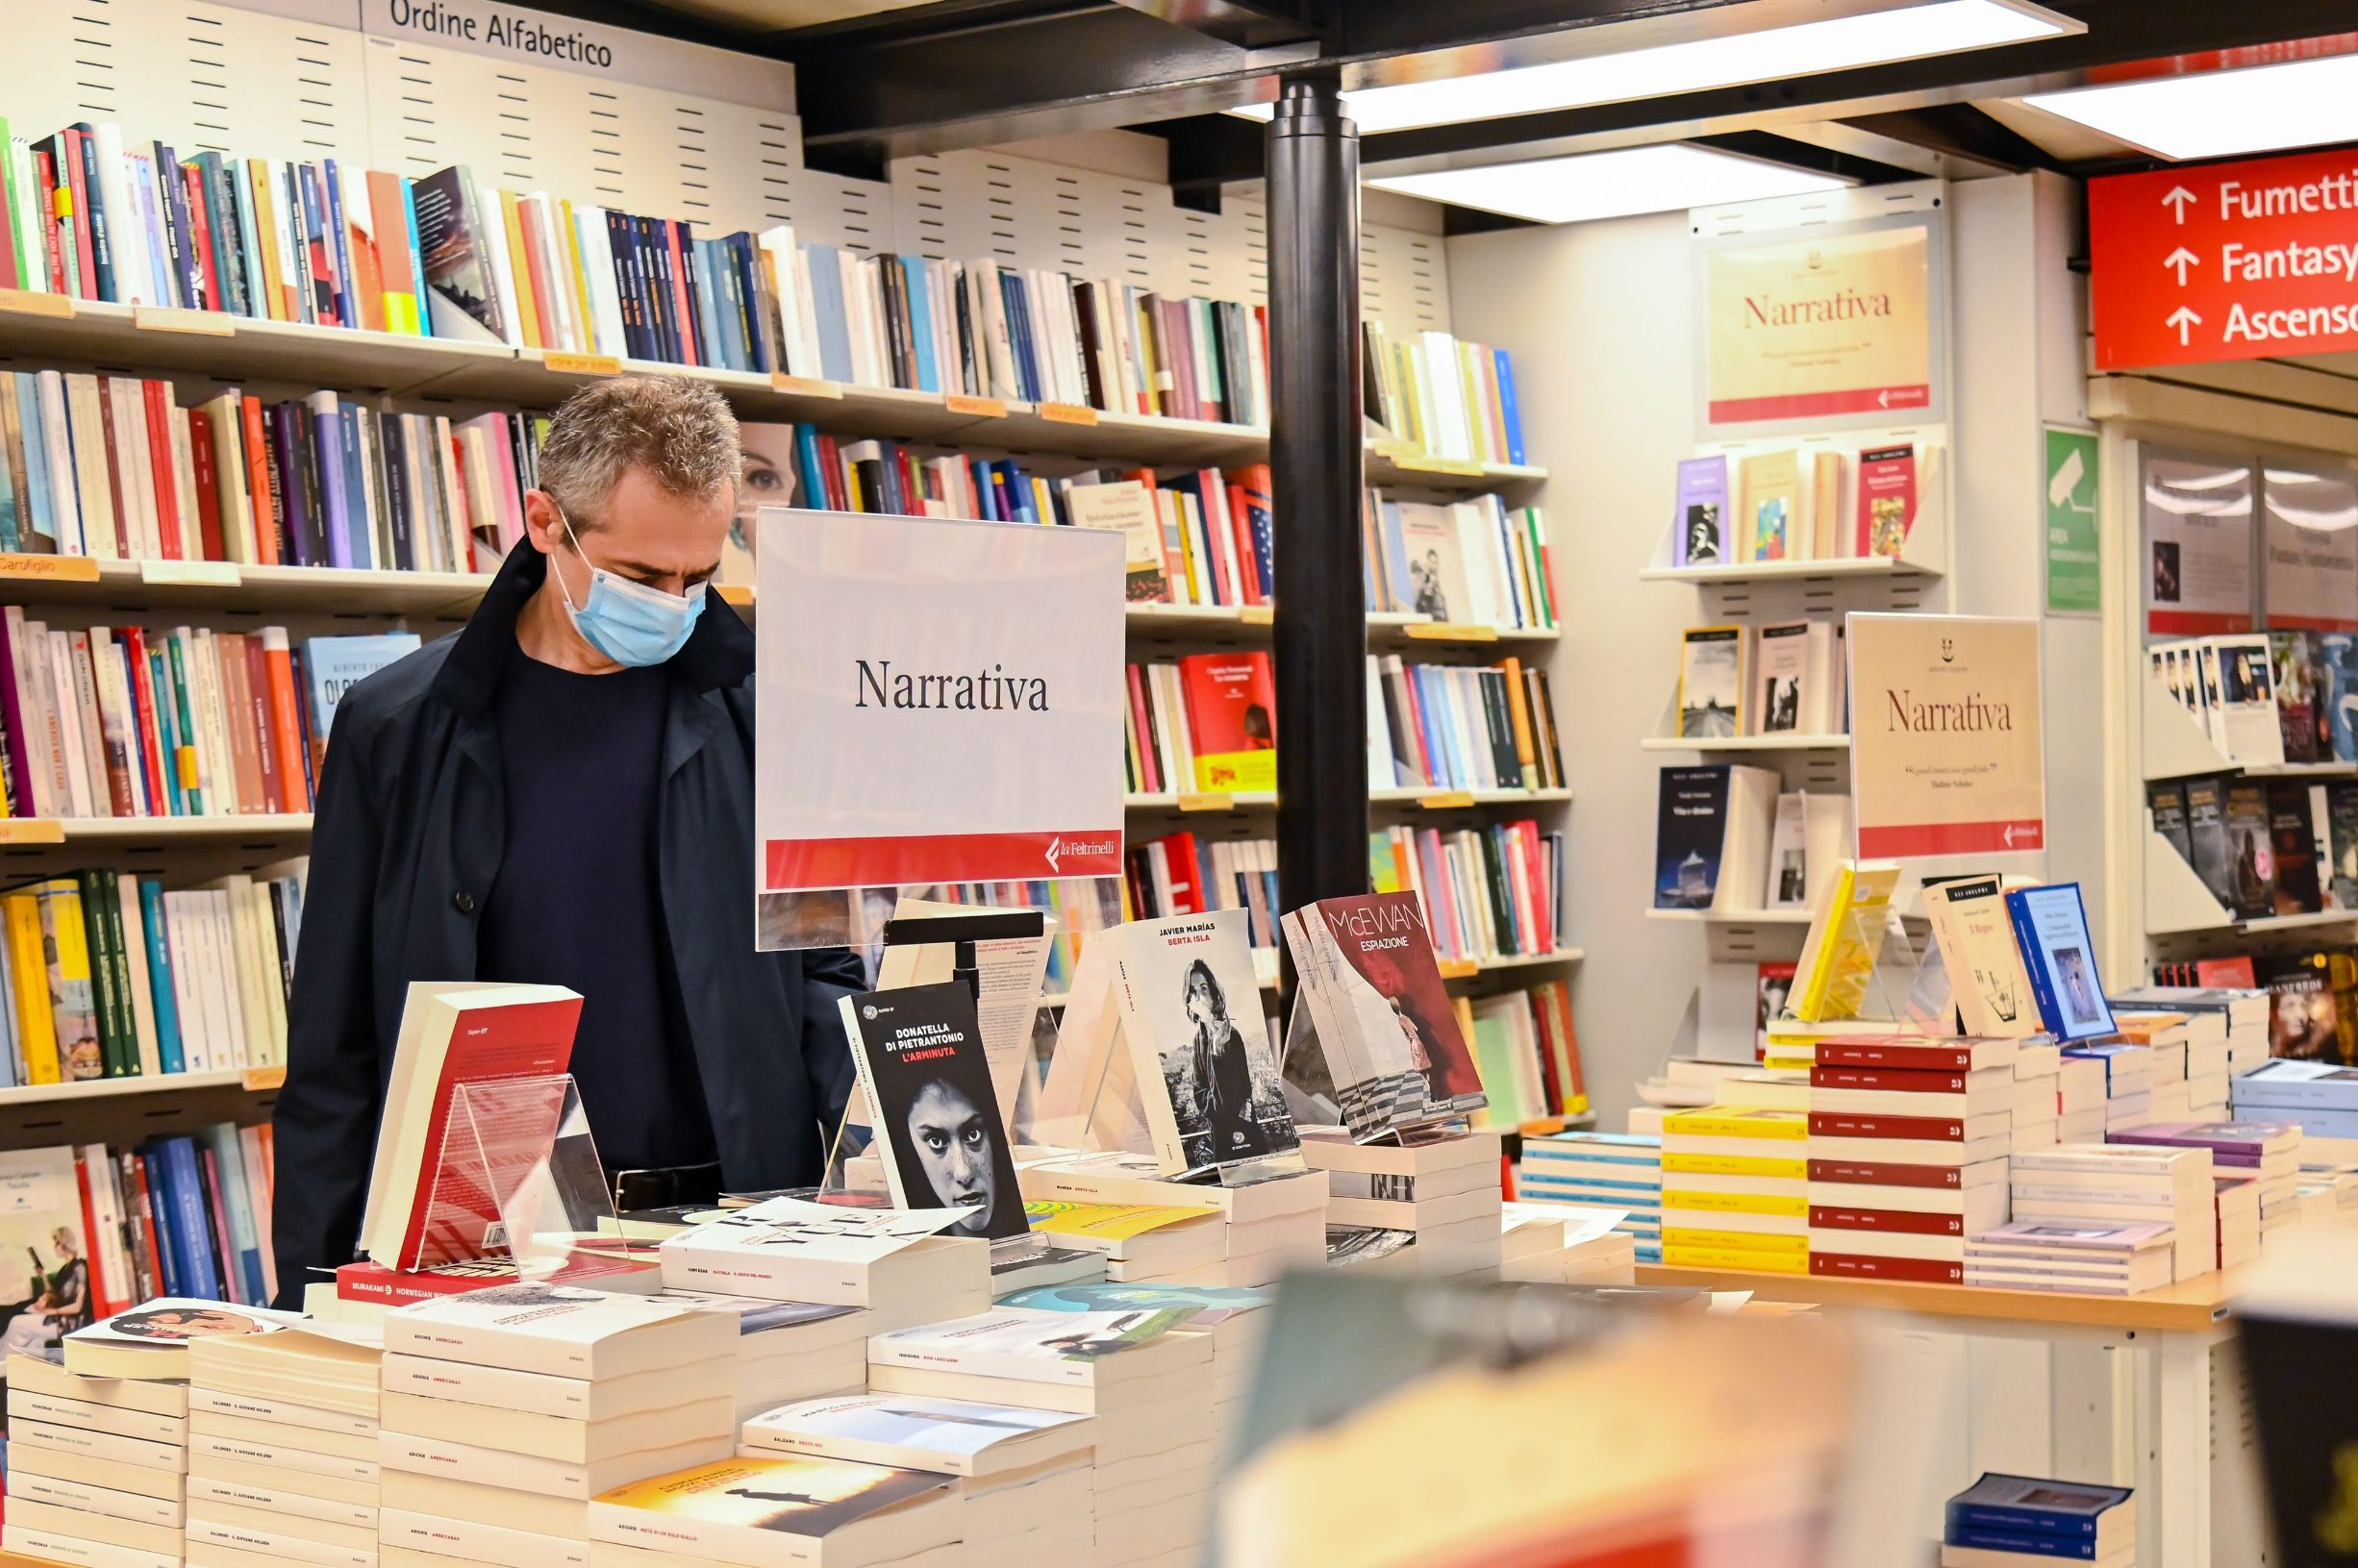 A man shops in a bookstore in Rome on April 20, 2020 after the Italian government decides the re-opening of certain commercial activities amid a lockdown aimed at curbing the spread of the COVID-19 disease caused by the novel coronavirus. (Photo by Andreas SOLARO / AFP)